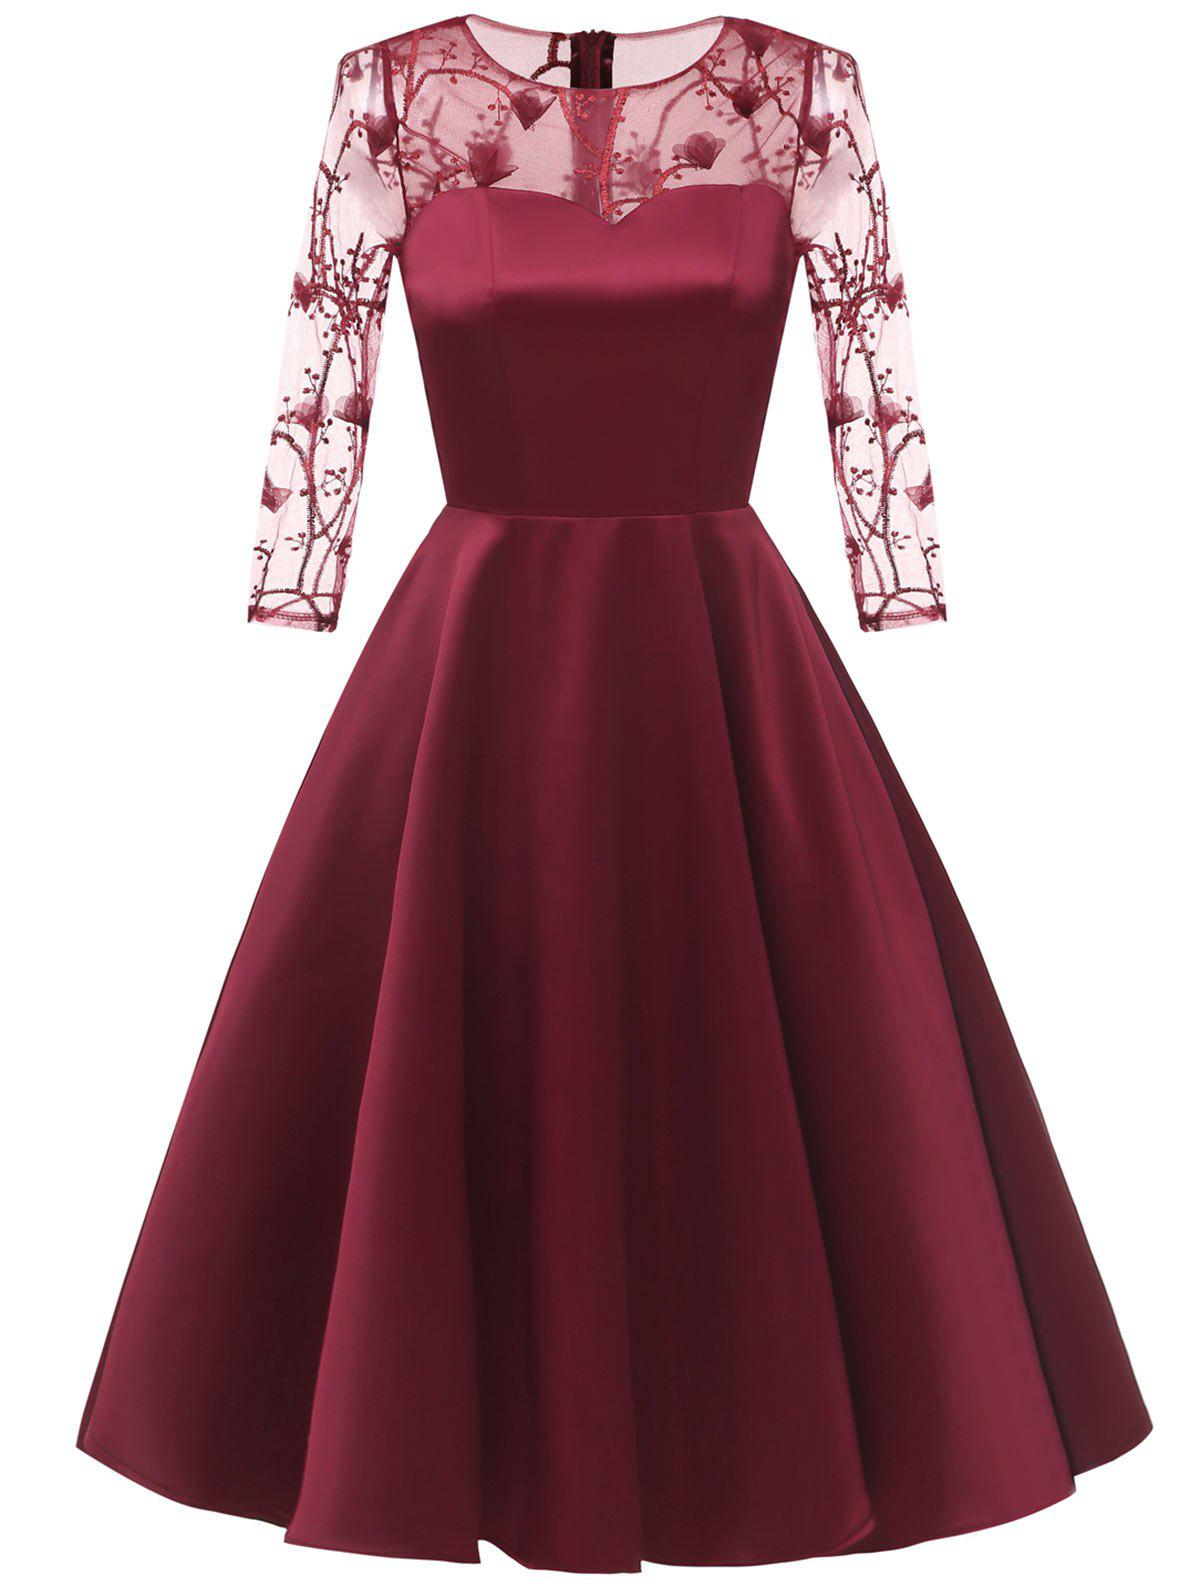 5bac5cbcf6 2018 Sheer Embroidered Mesh Panel Cocktail Dress In Red Wine M ...